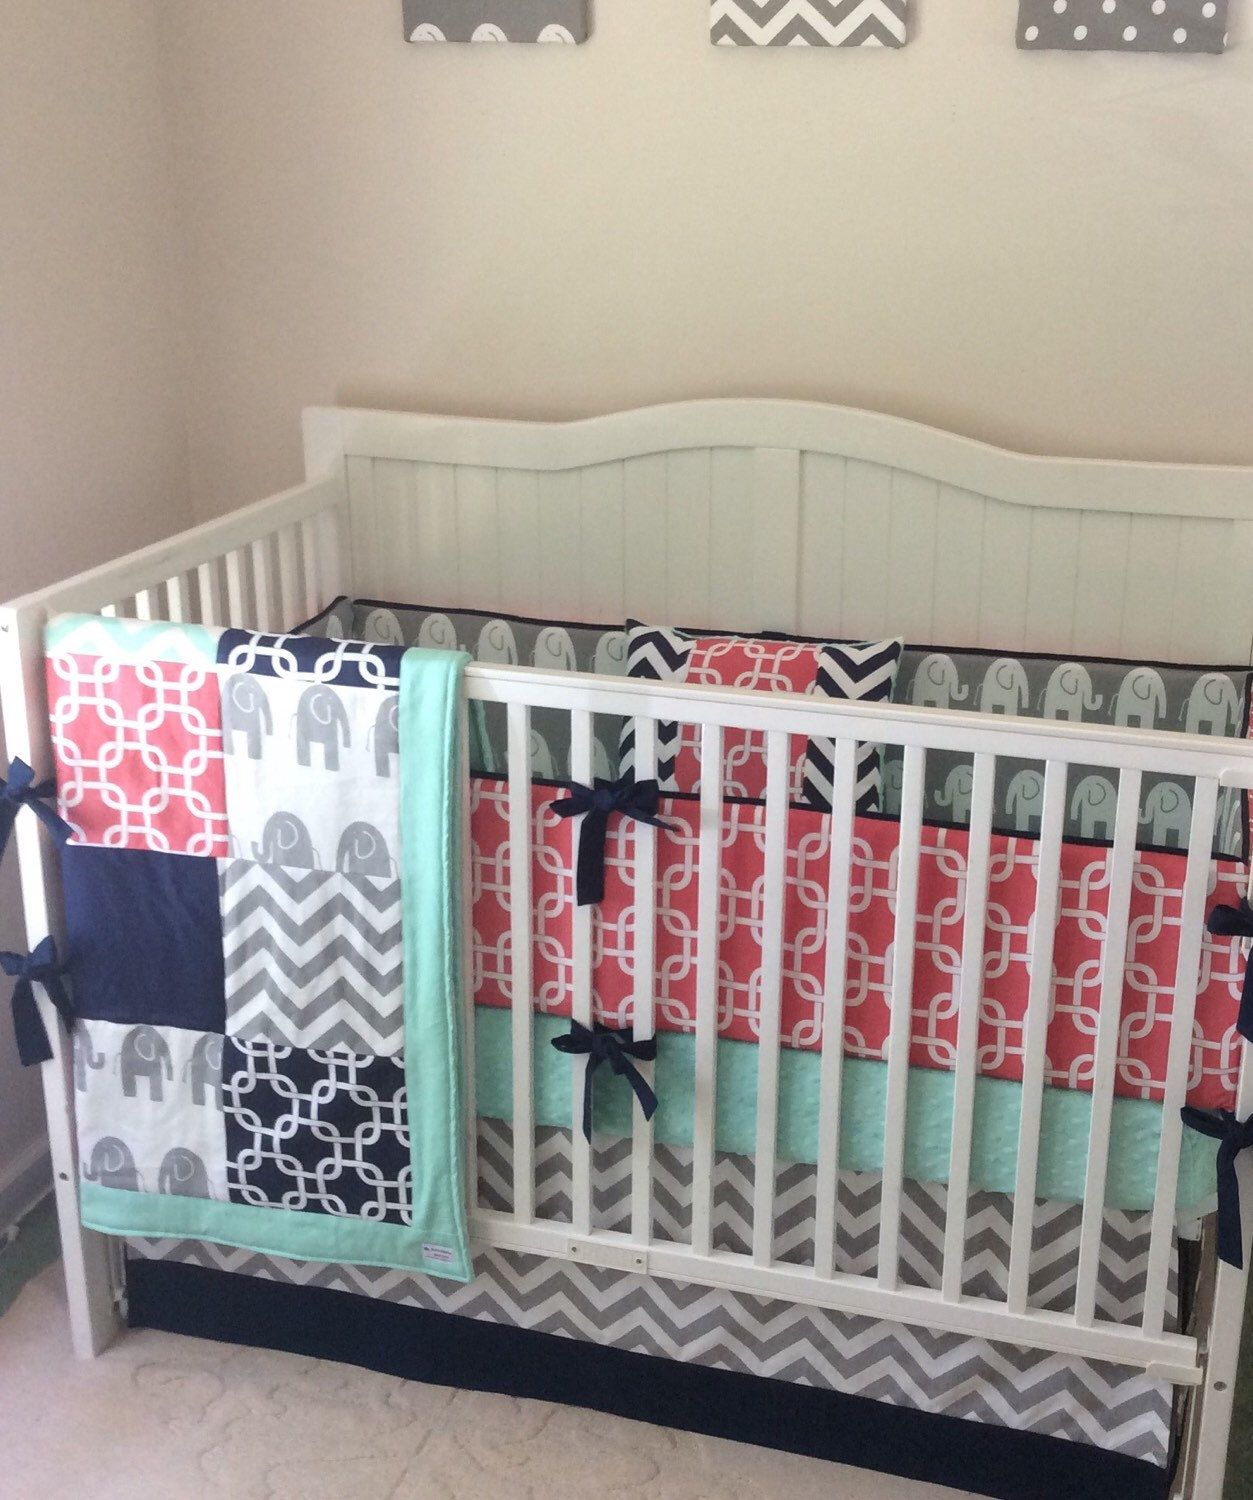 Crib bedding set gray white navy blue with by butterbeansboutique - Deposit Navy Mint And Coral Crib Bedding By Butterbeansboutique